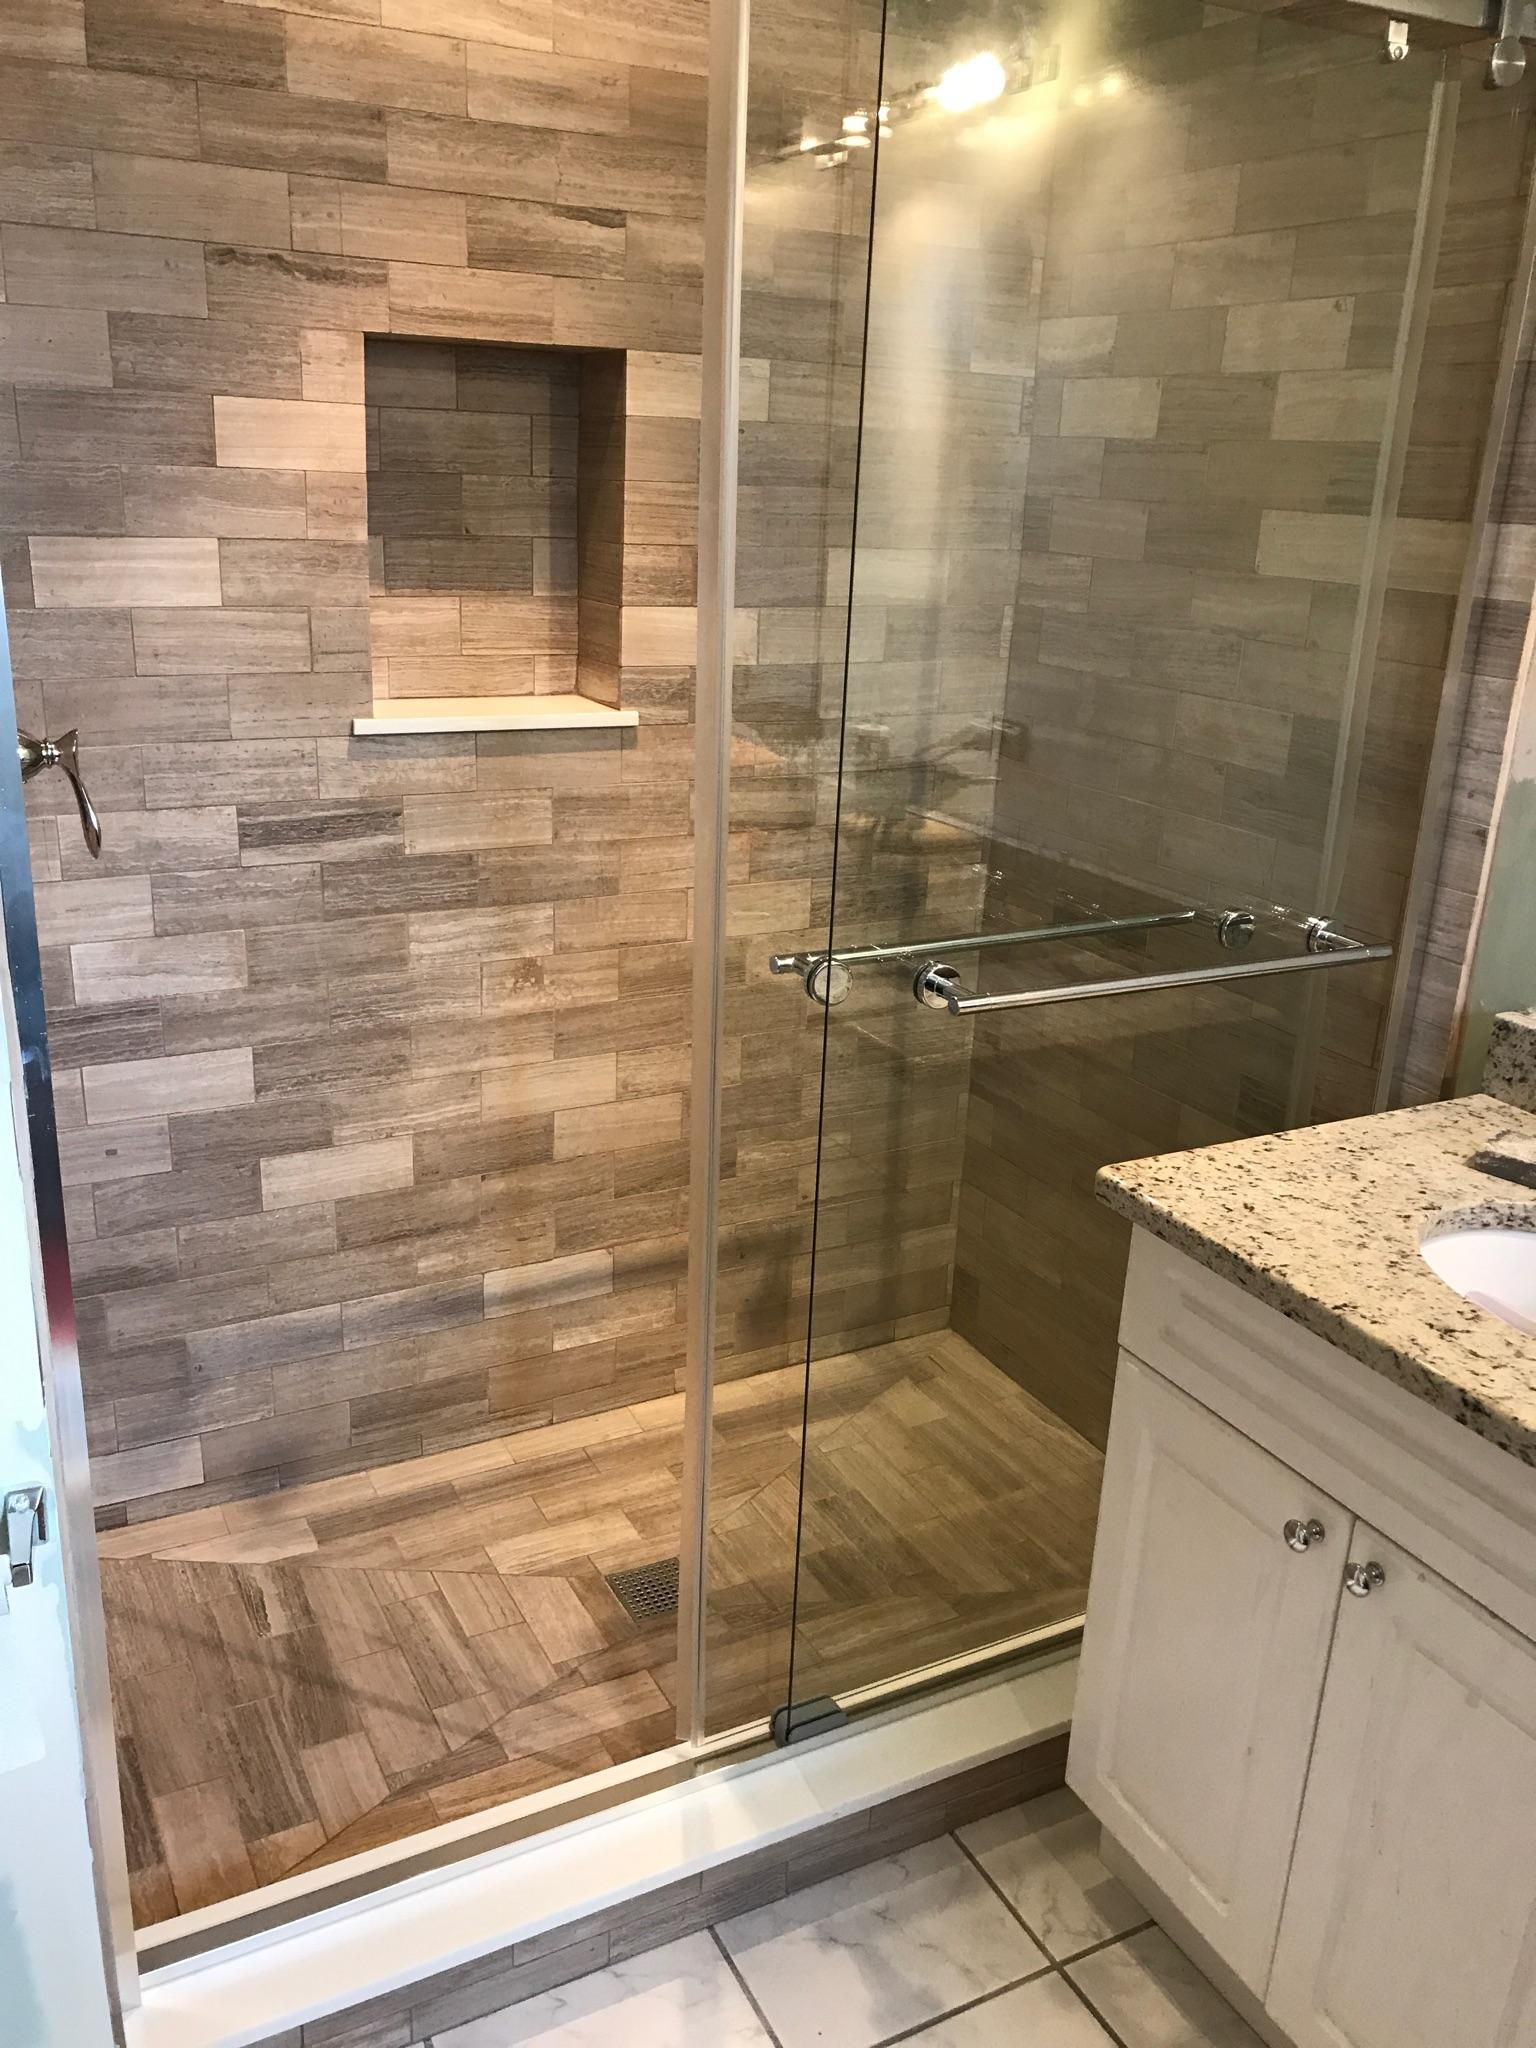 Clink The Link To Our Sister Company Garys Home And Bath Remodeling - Gary's handyman and bathroom remodeling